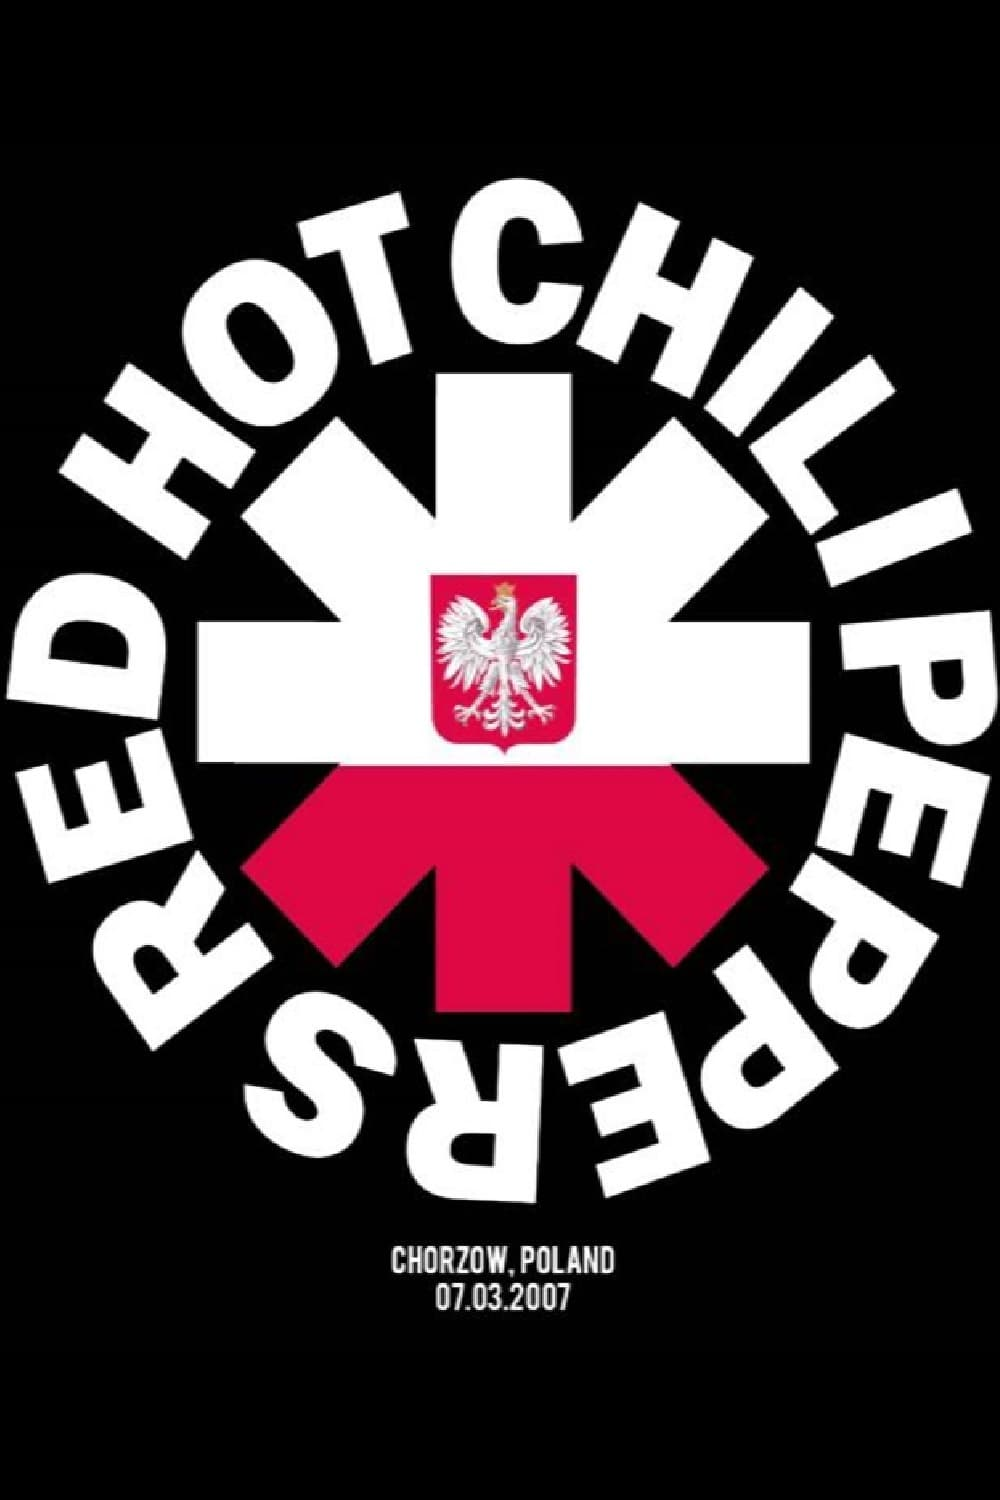 Red hot chili peppers live in poland 2007 the movie red hot chili peppers stadion slaski chorzw poland biocorpaavc